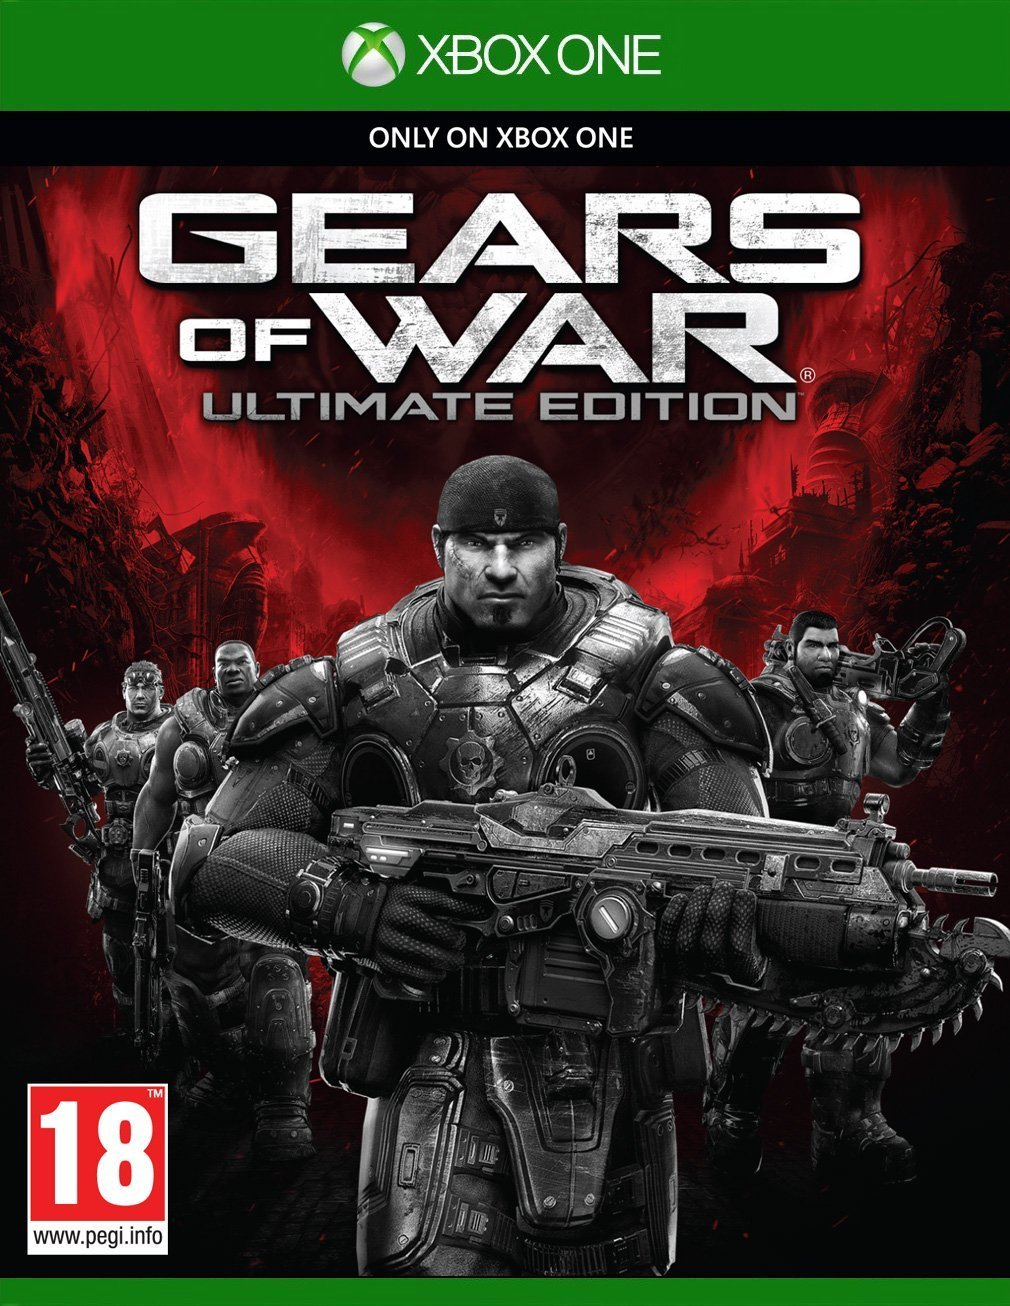 Gears of War - Ultimate Edition (Xbox One) product image